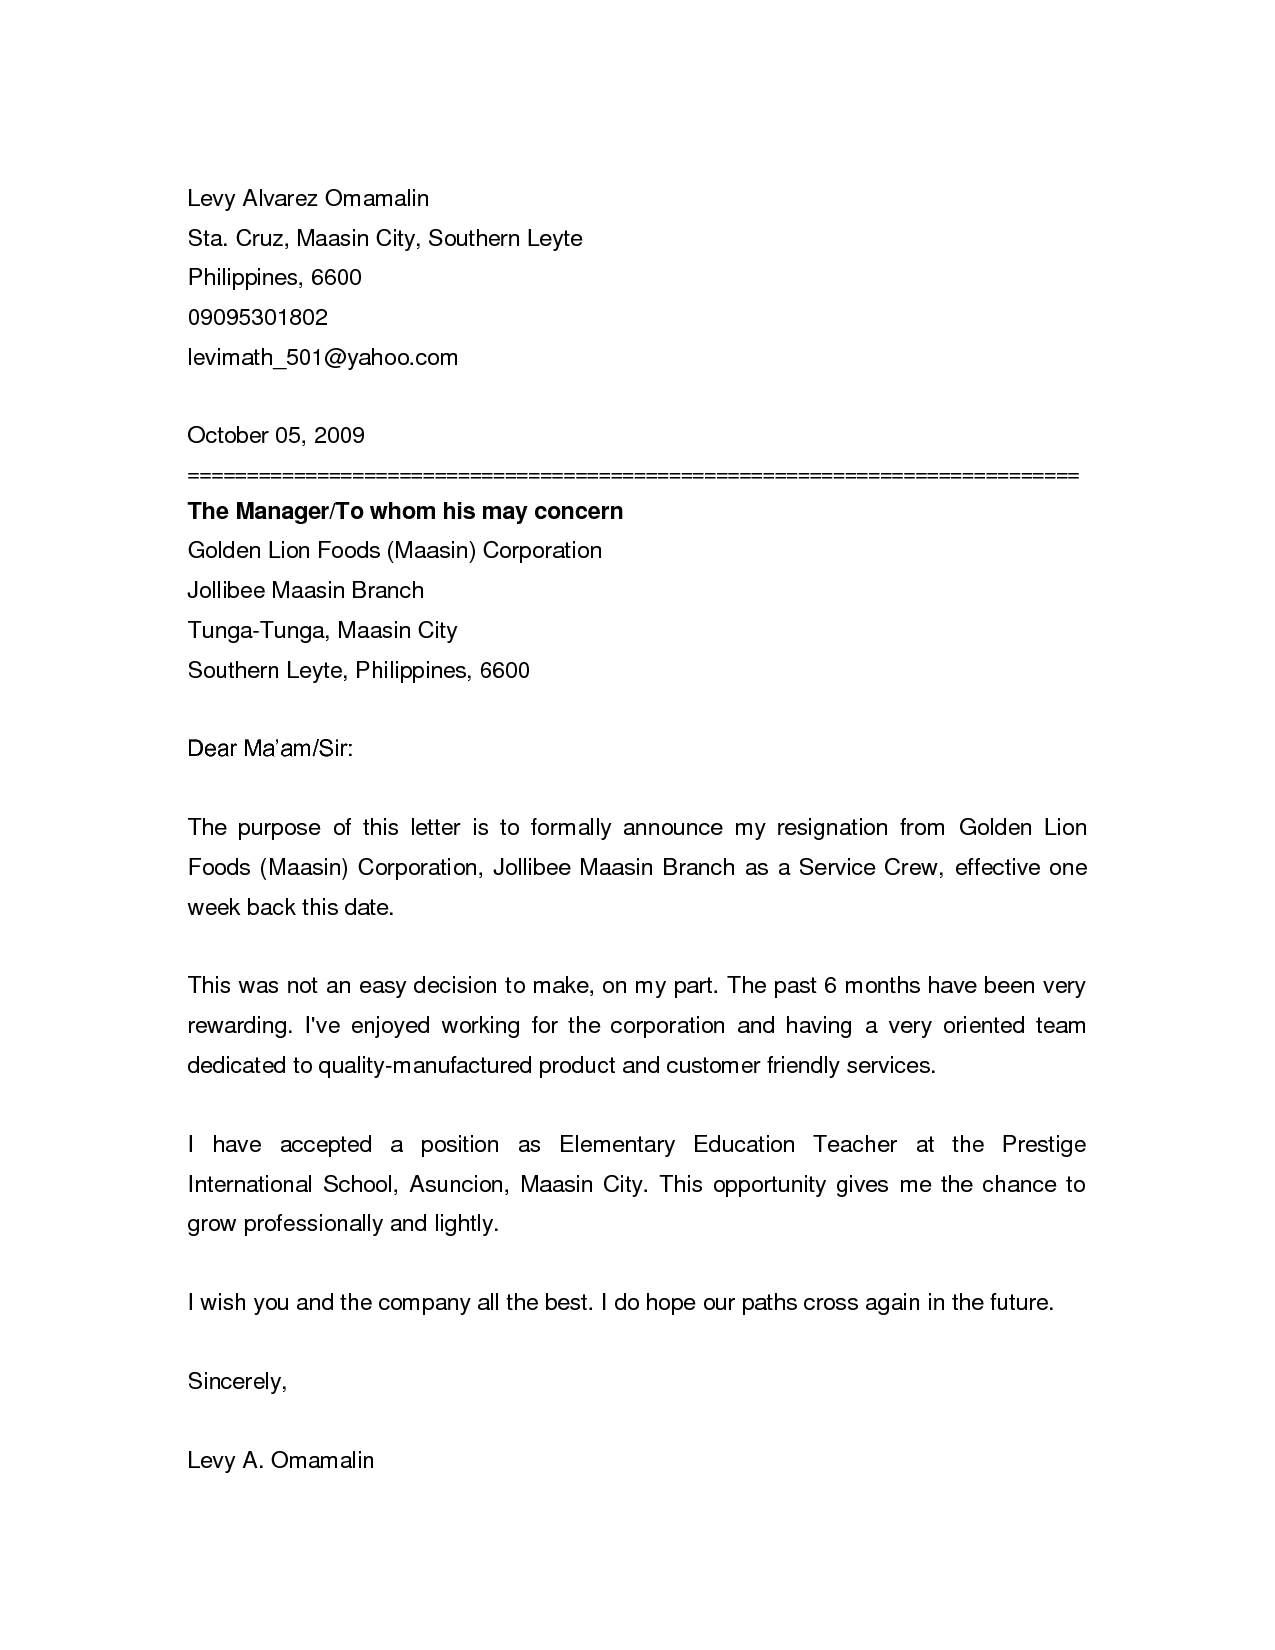 Resignation Announcement Letter This Simple Template Free Word Excel Pdf  Format  Announcement Letter Sample Format